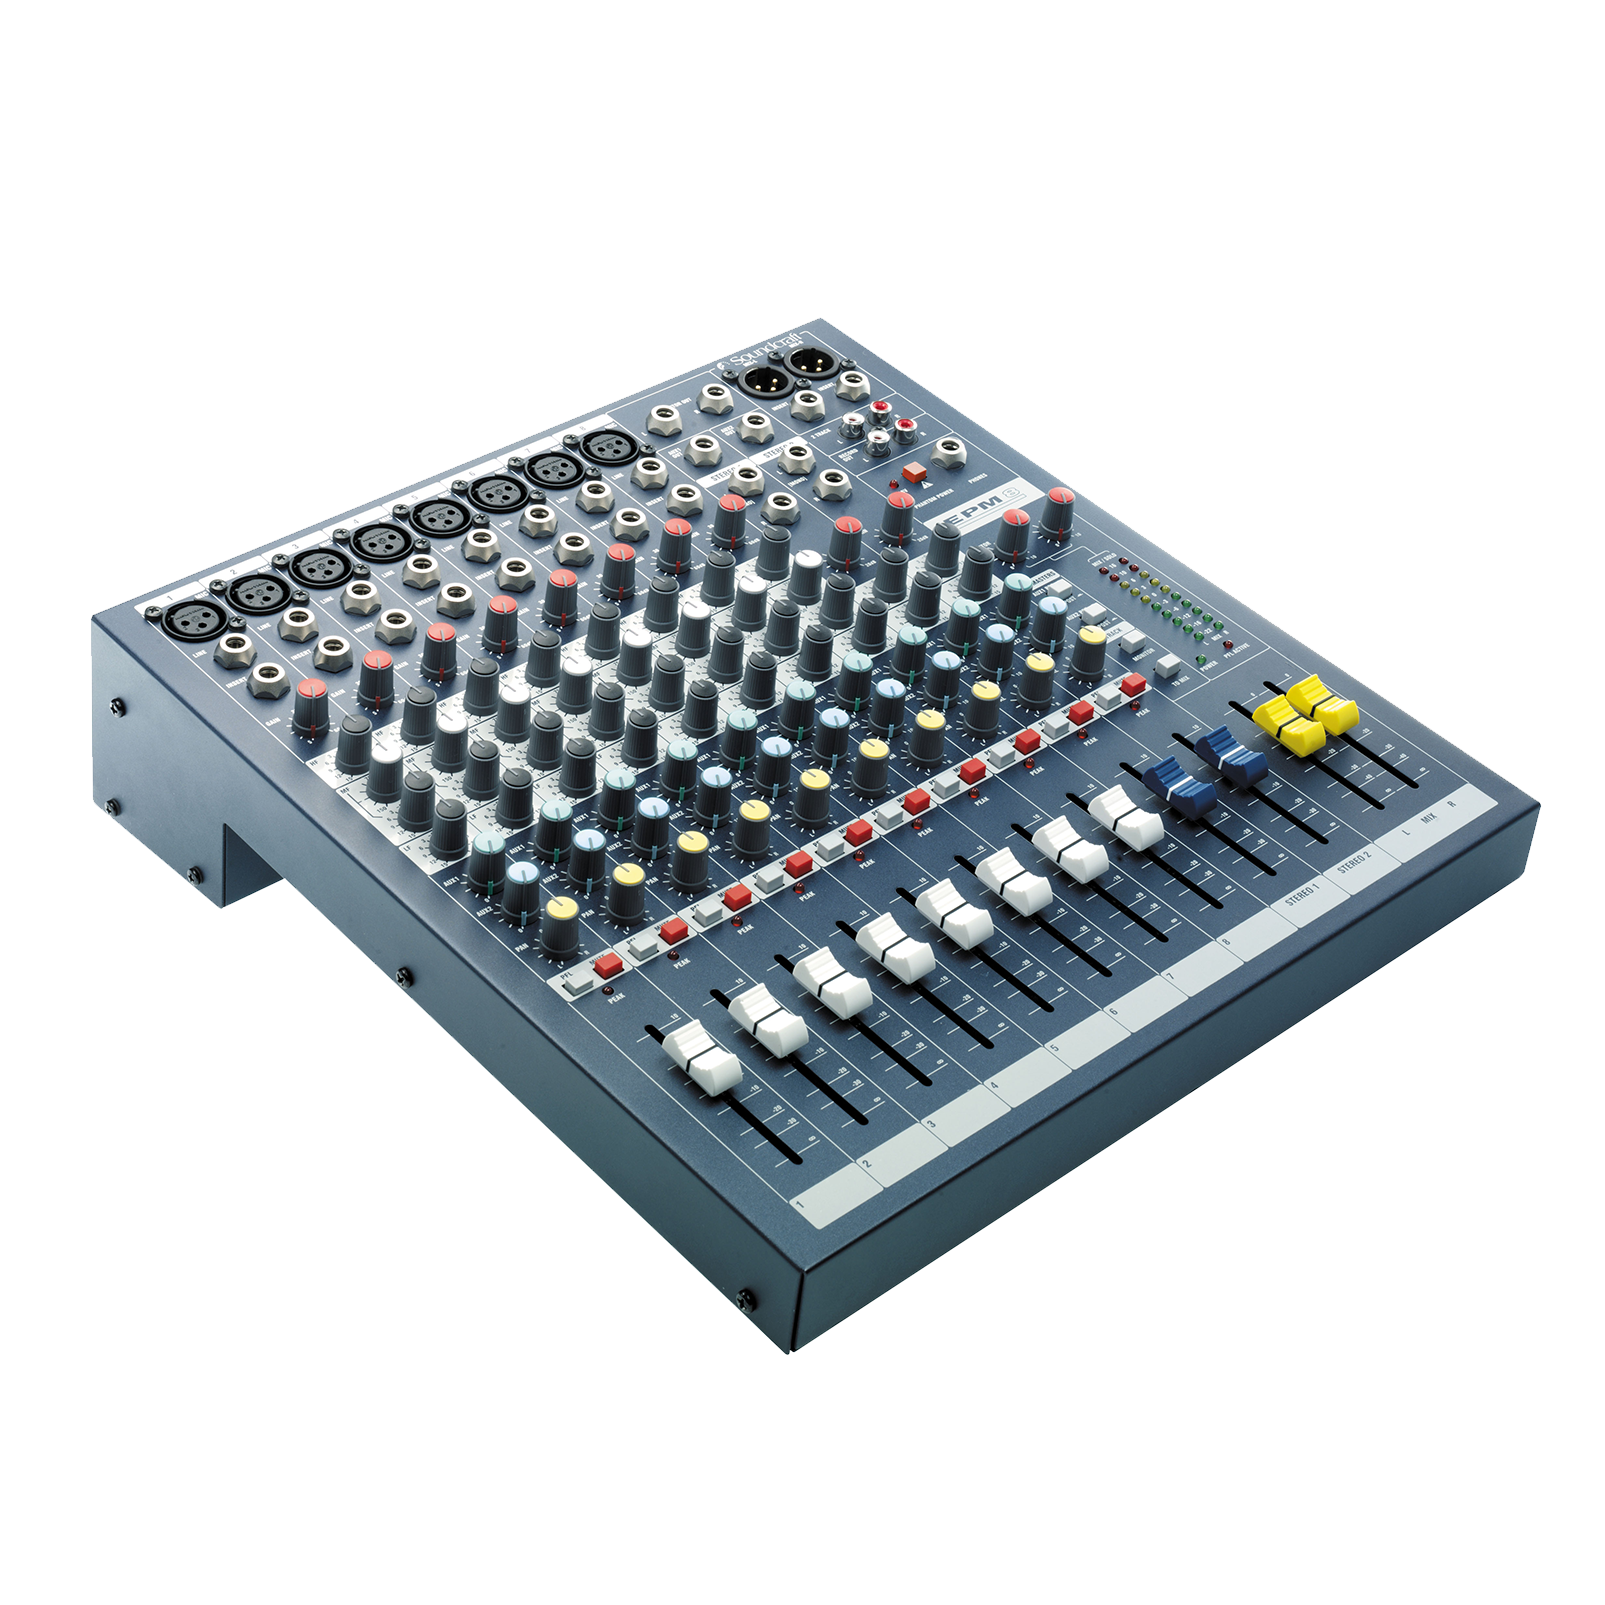 EPM8 - Dark Blue - A multipurpose mixer that carries the hallmarks of Soundcraft's professional heritage. - Hero